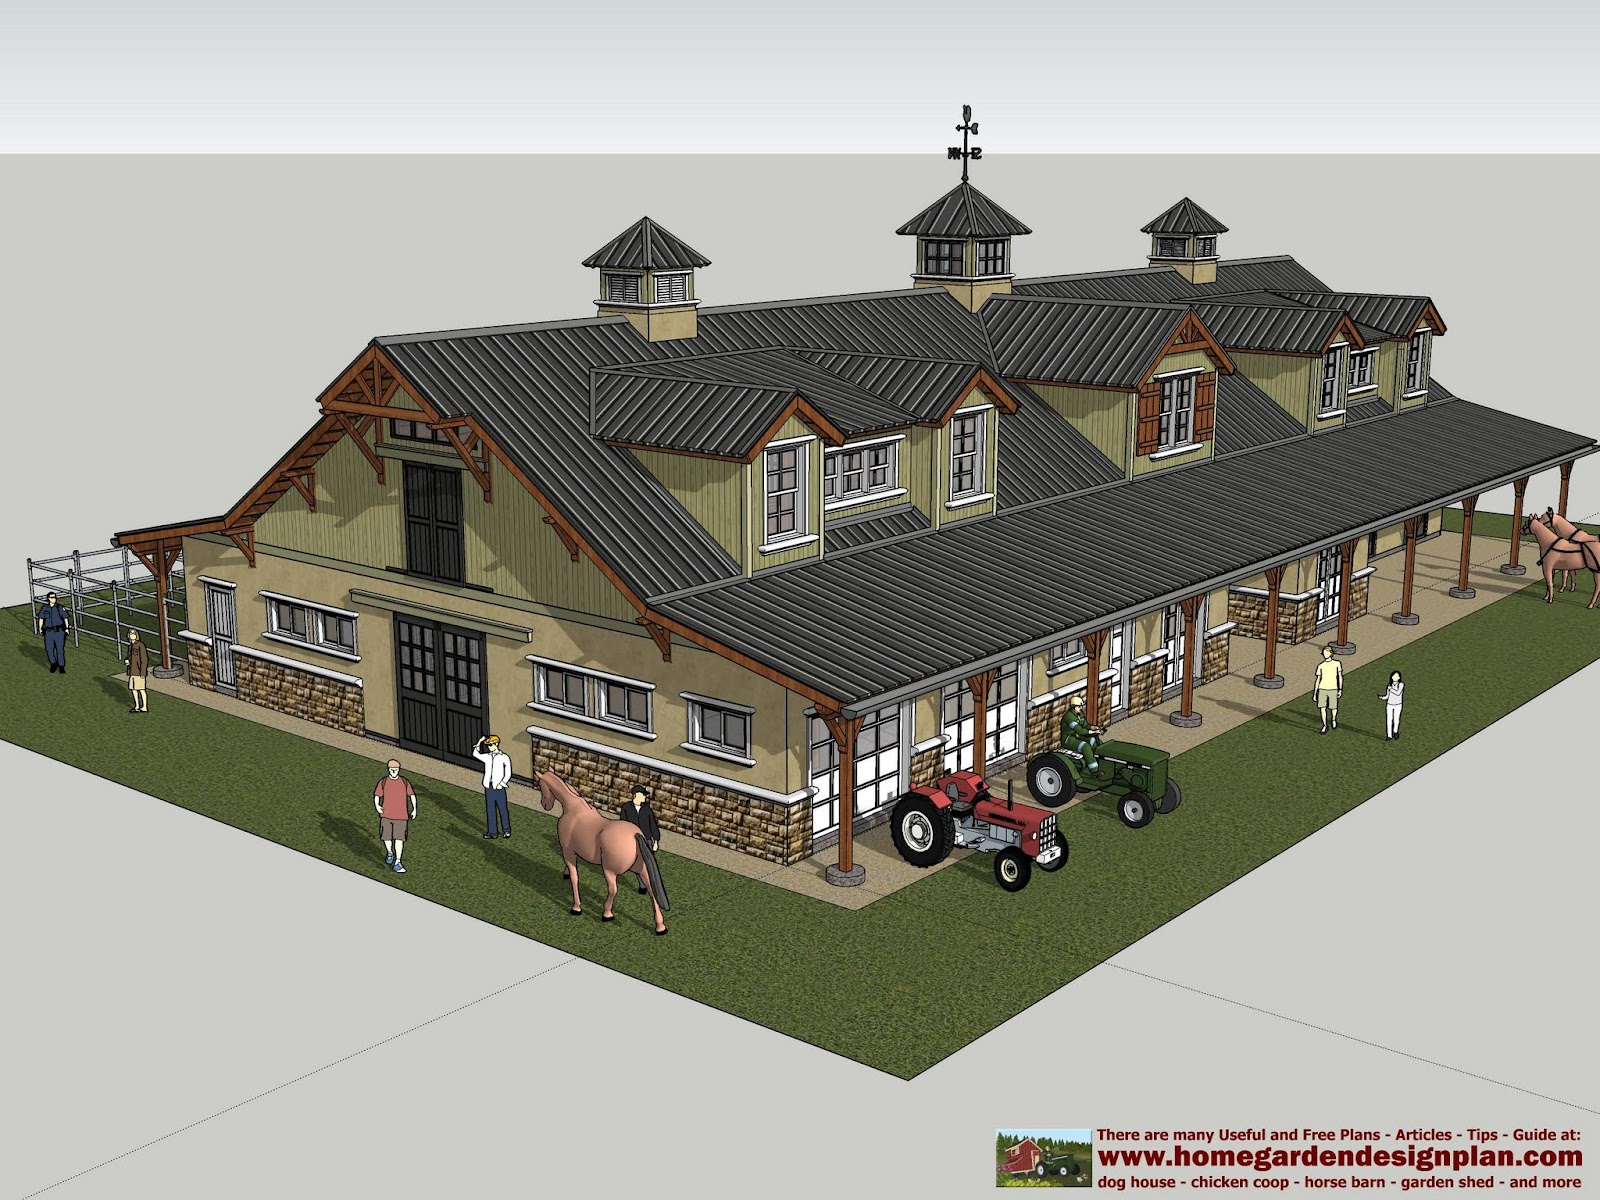 Home garden plans hb100 horse barn plans horse barn for Barn designs for horses